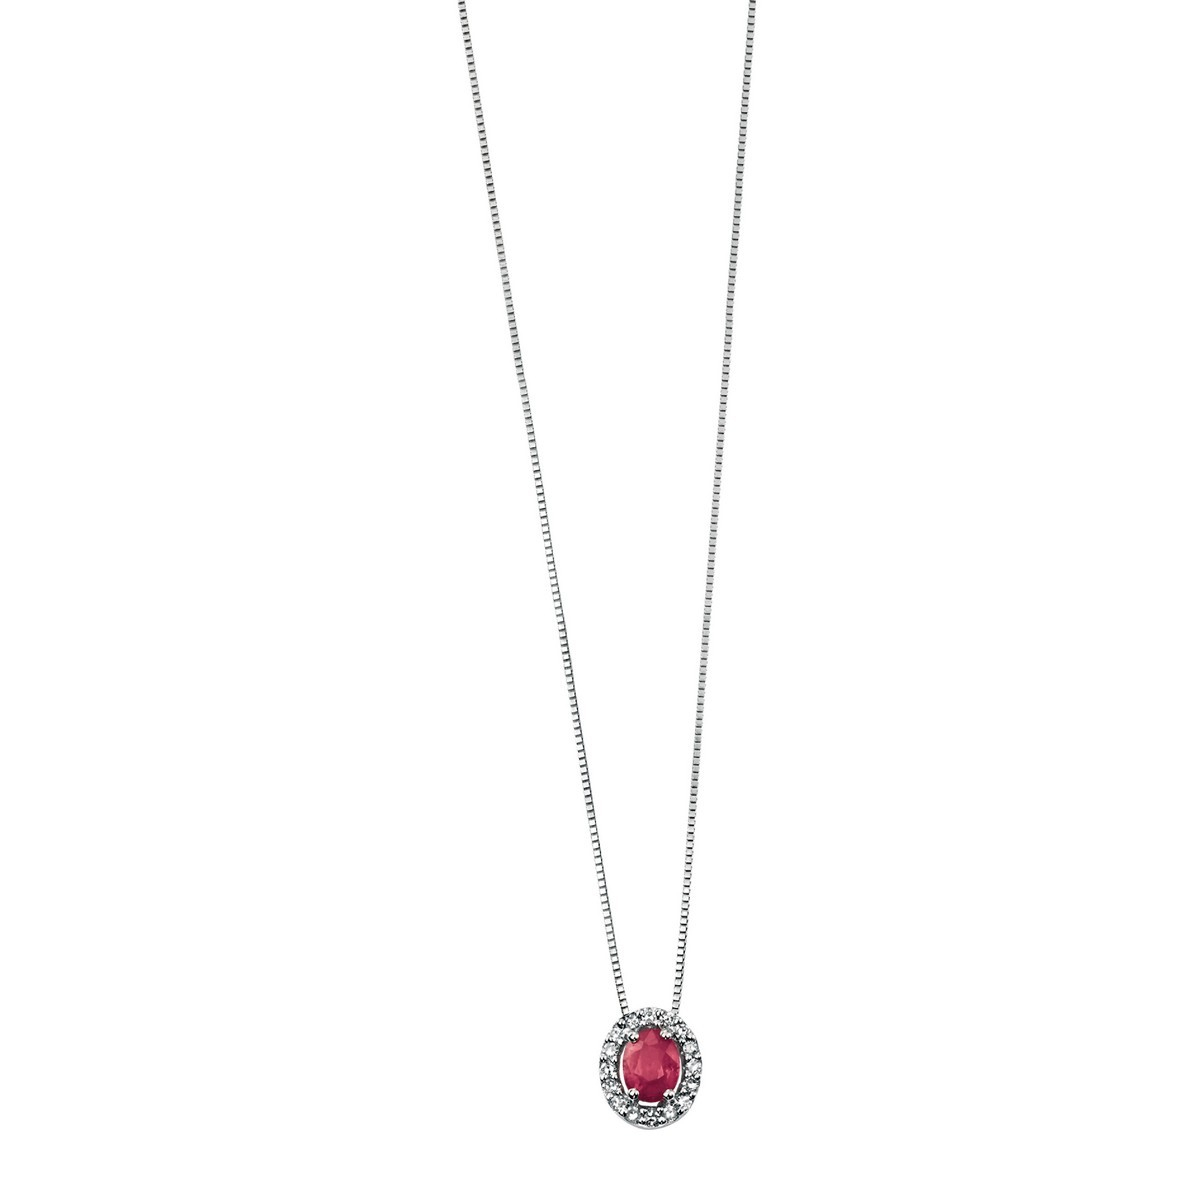 Elements White Gold Oval Ruby Pendant Pave Diamonds Gp677rz475gn064 Pertaining To Best And Newest Pavé Locket Element Necklaces (View 11 of 25)